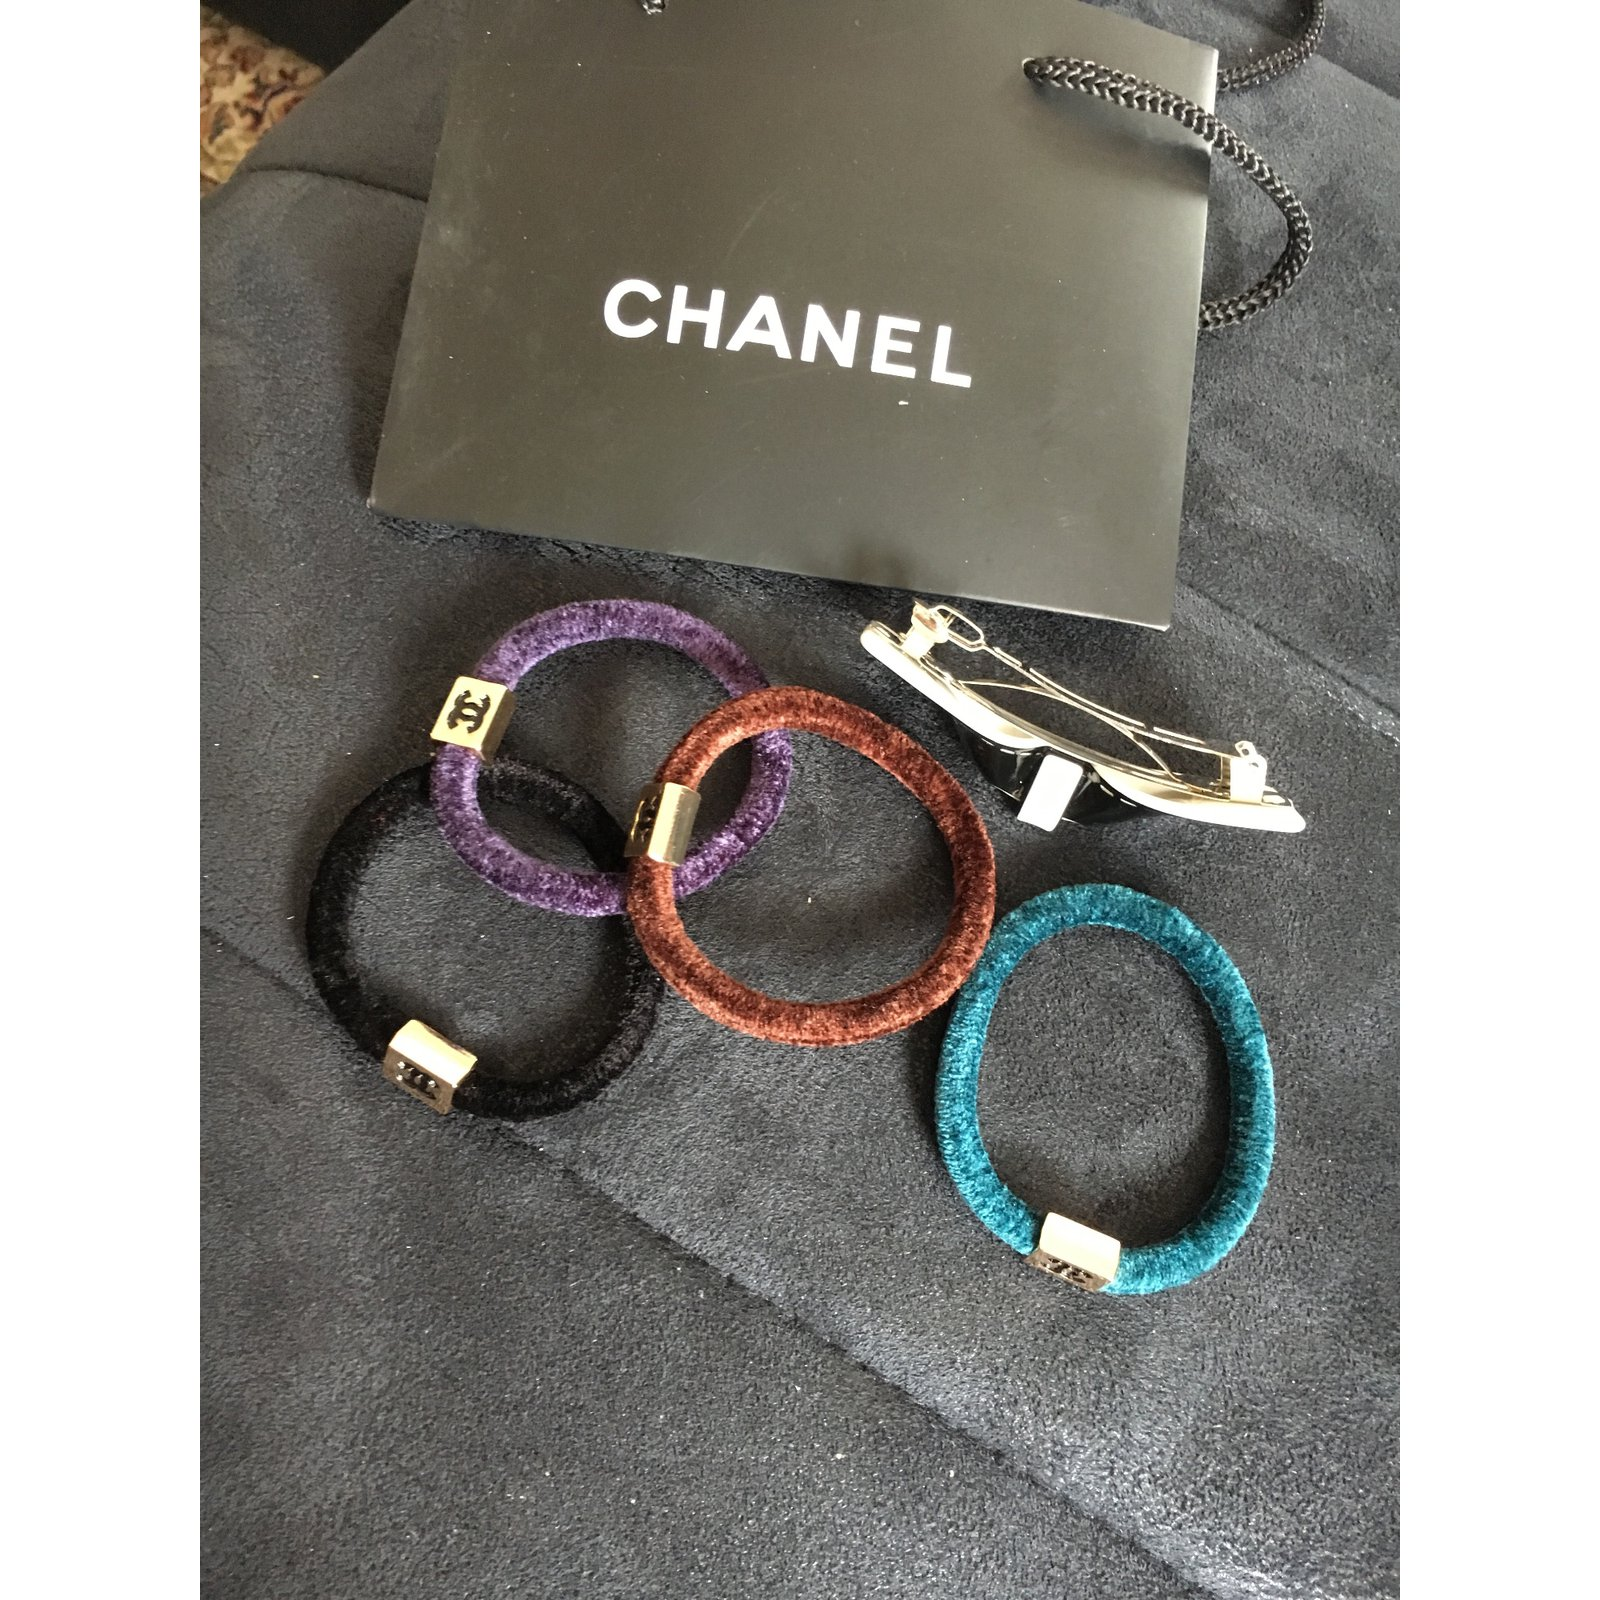 684bfbd7f7 Chanel Hair accessories VIP gifts Cashmere Multiple colors ref.43307 - Joli  Closet